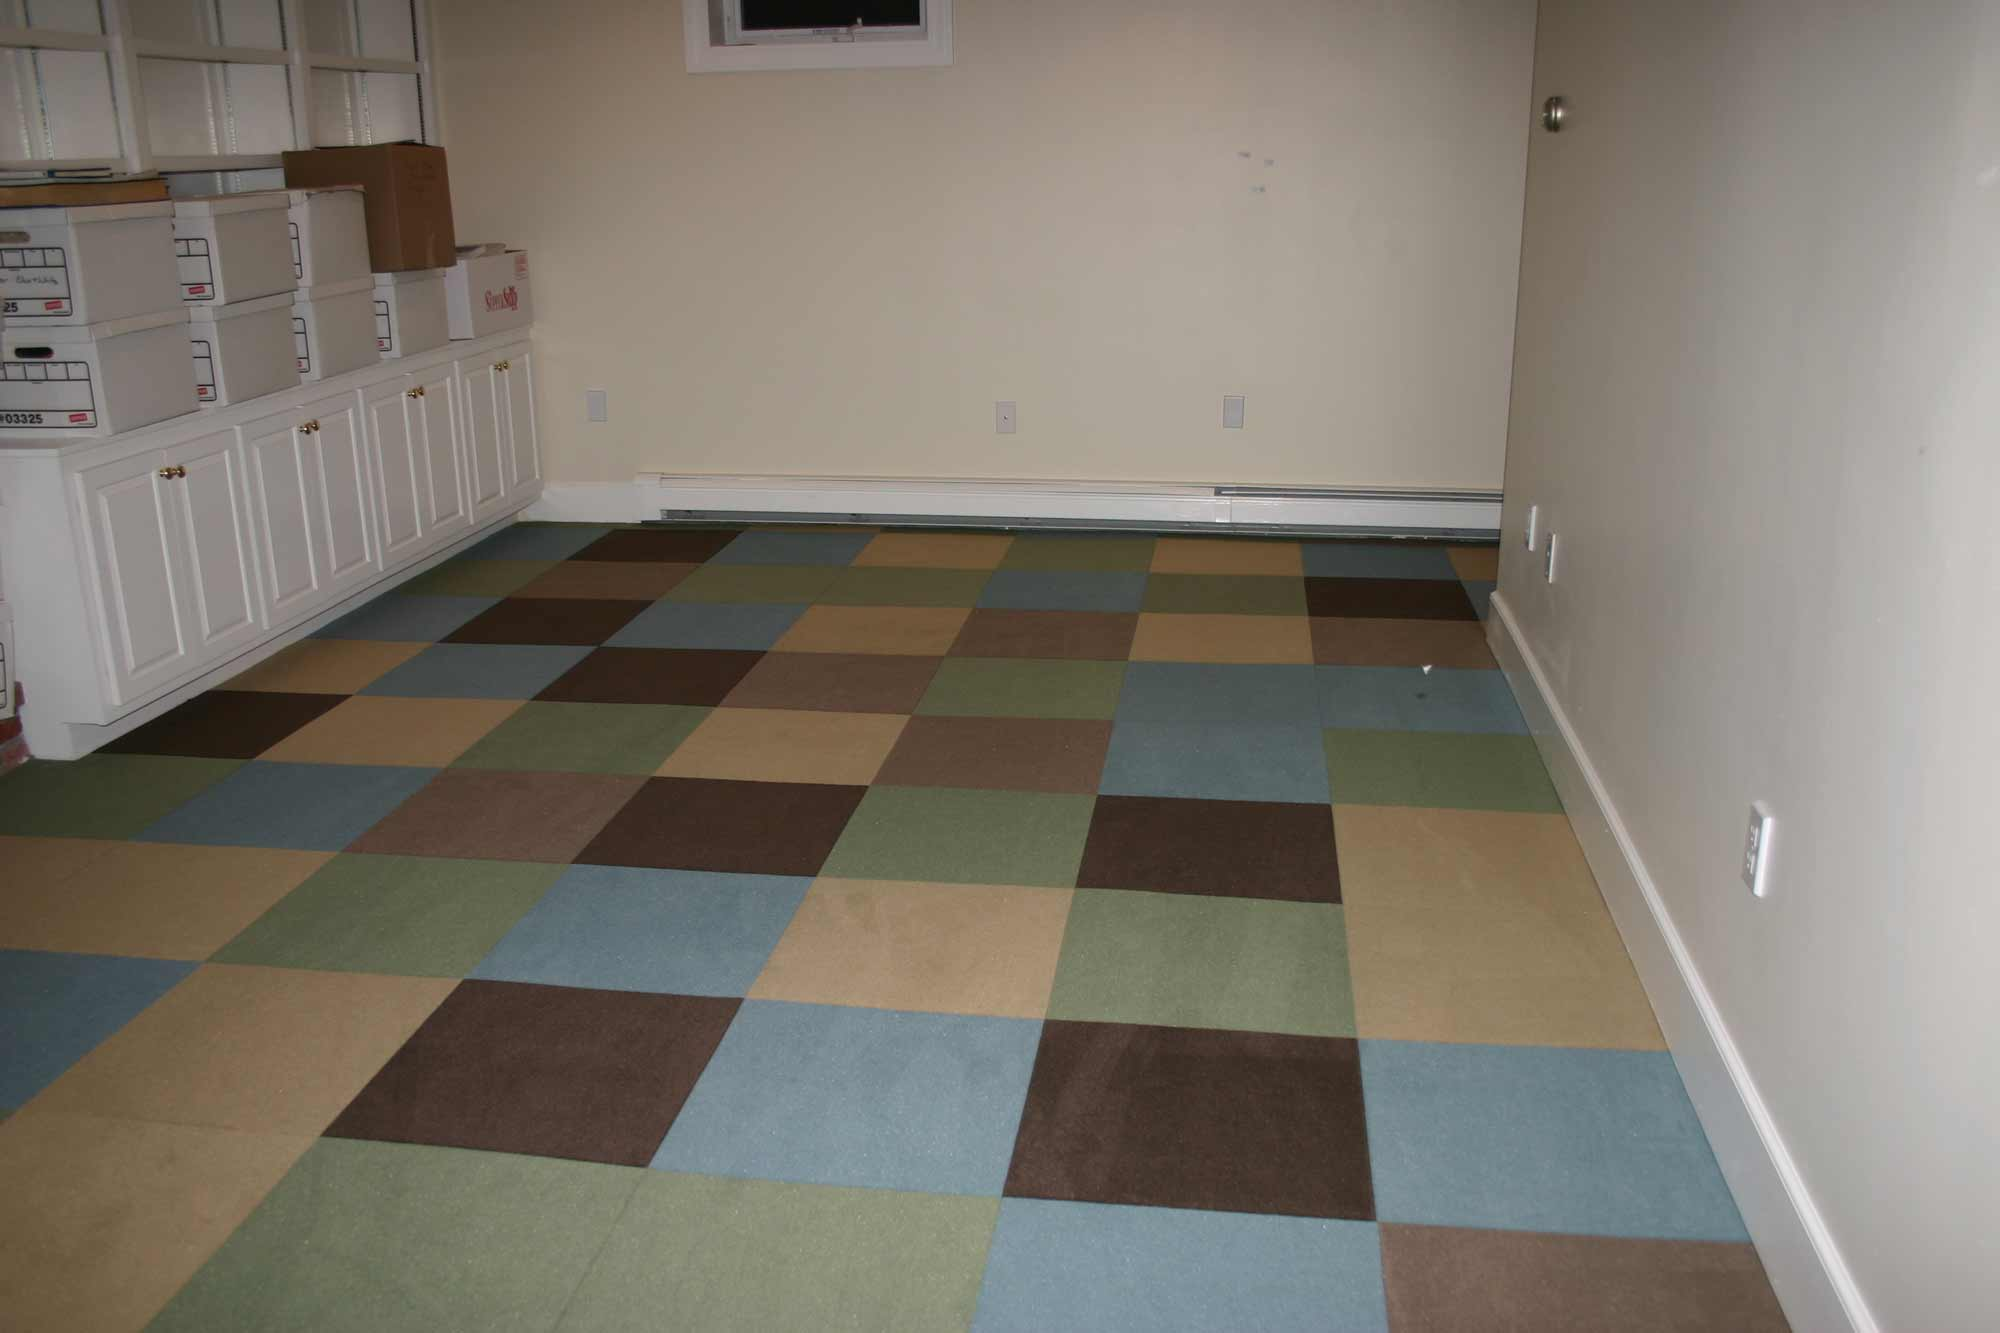 Bring basement floor covering more vivid homesfeed for Floor covering